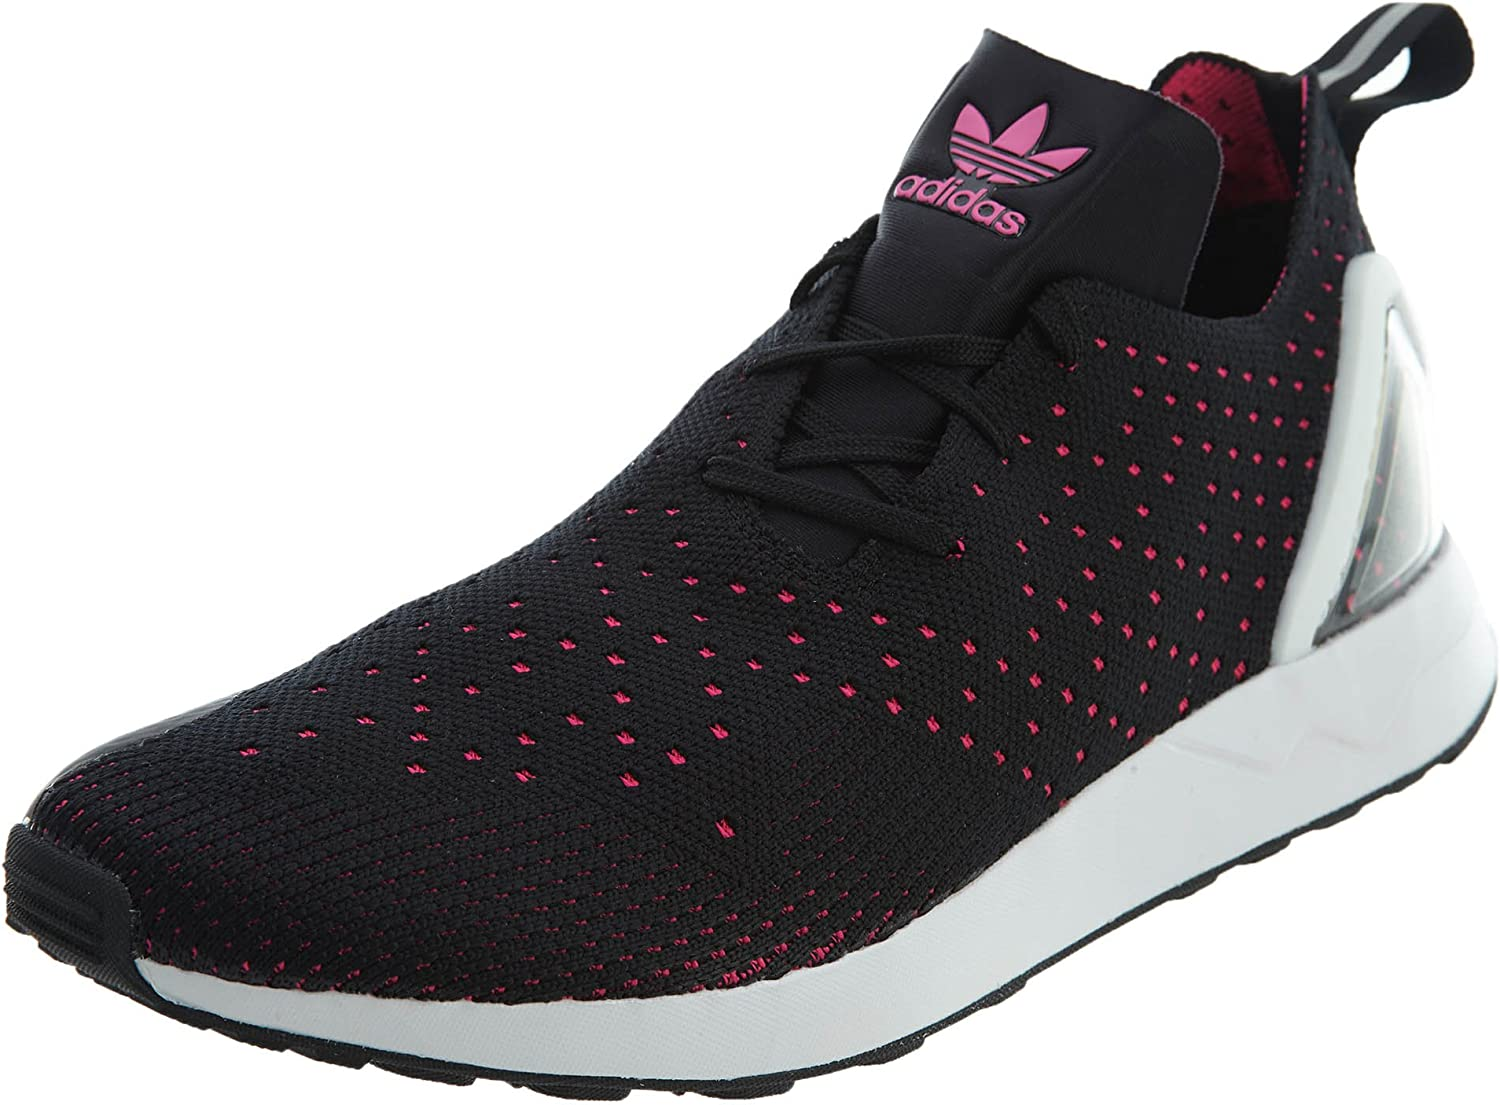 Adidas Zx Flux Adv Asym Pk Mens Style  S79063-Blk Pink Wht Size  13